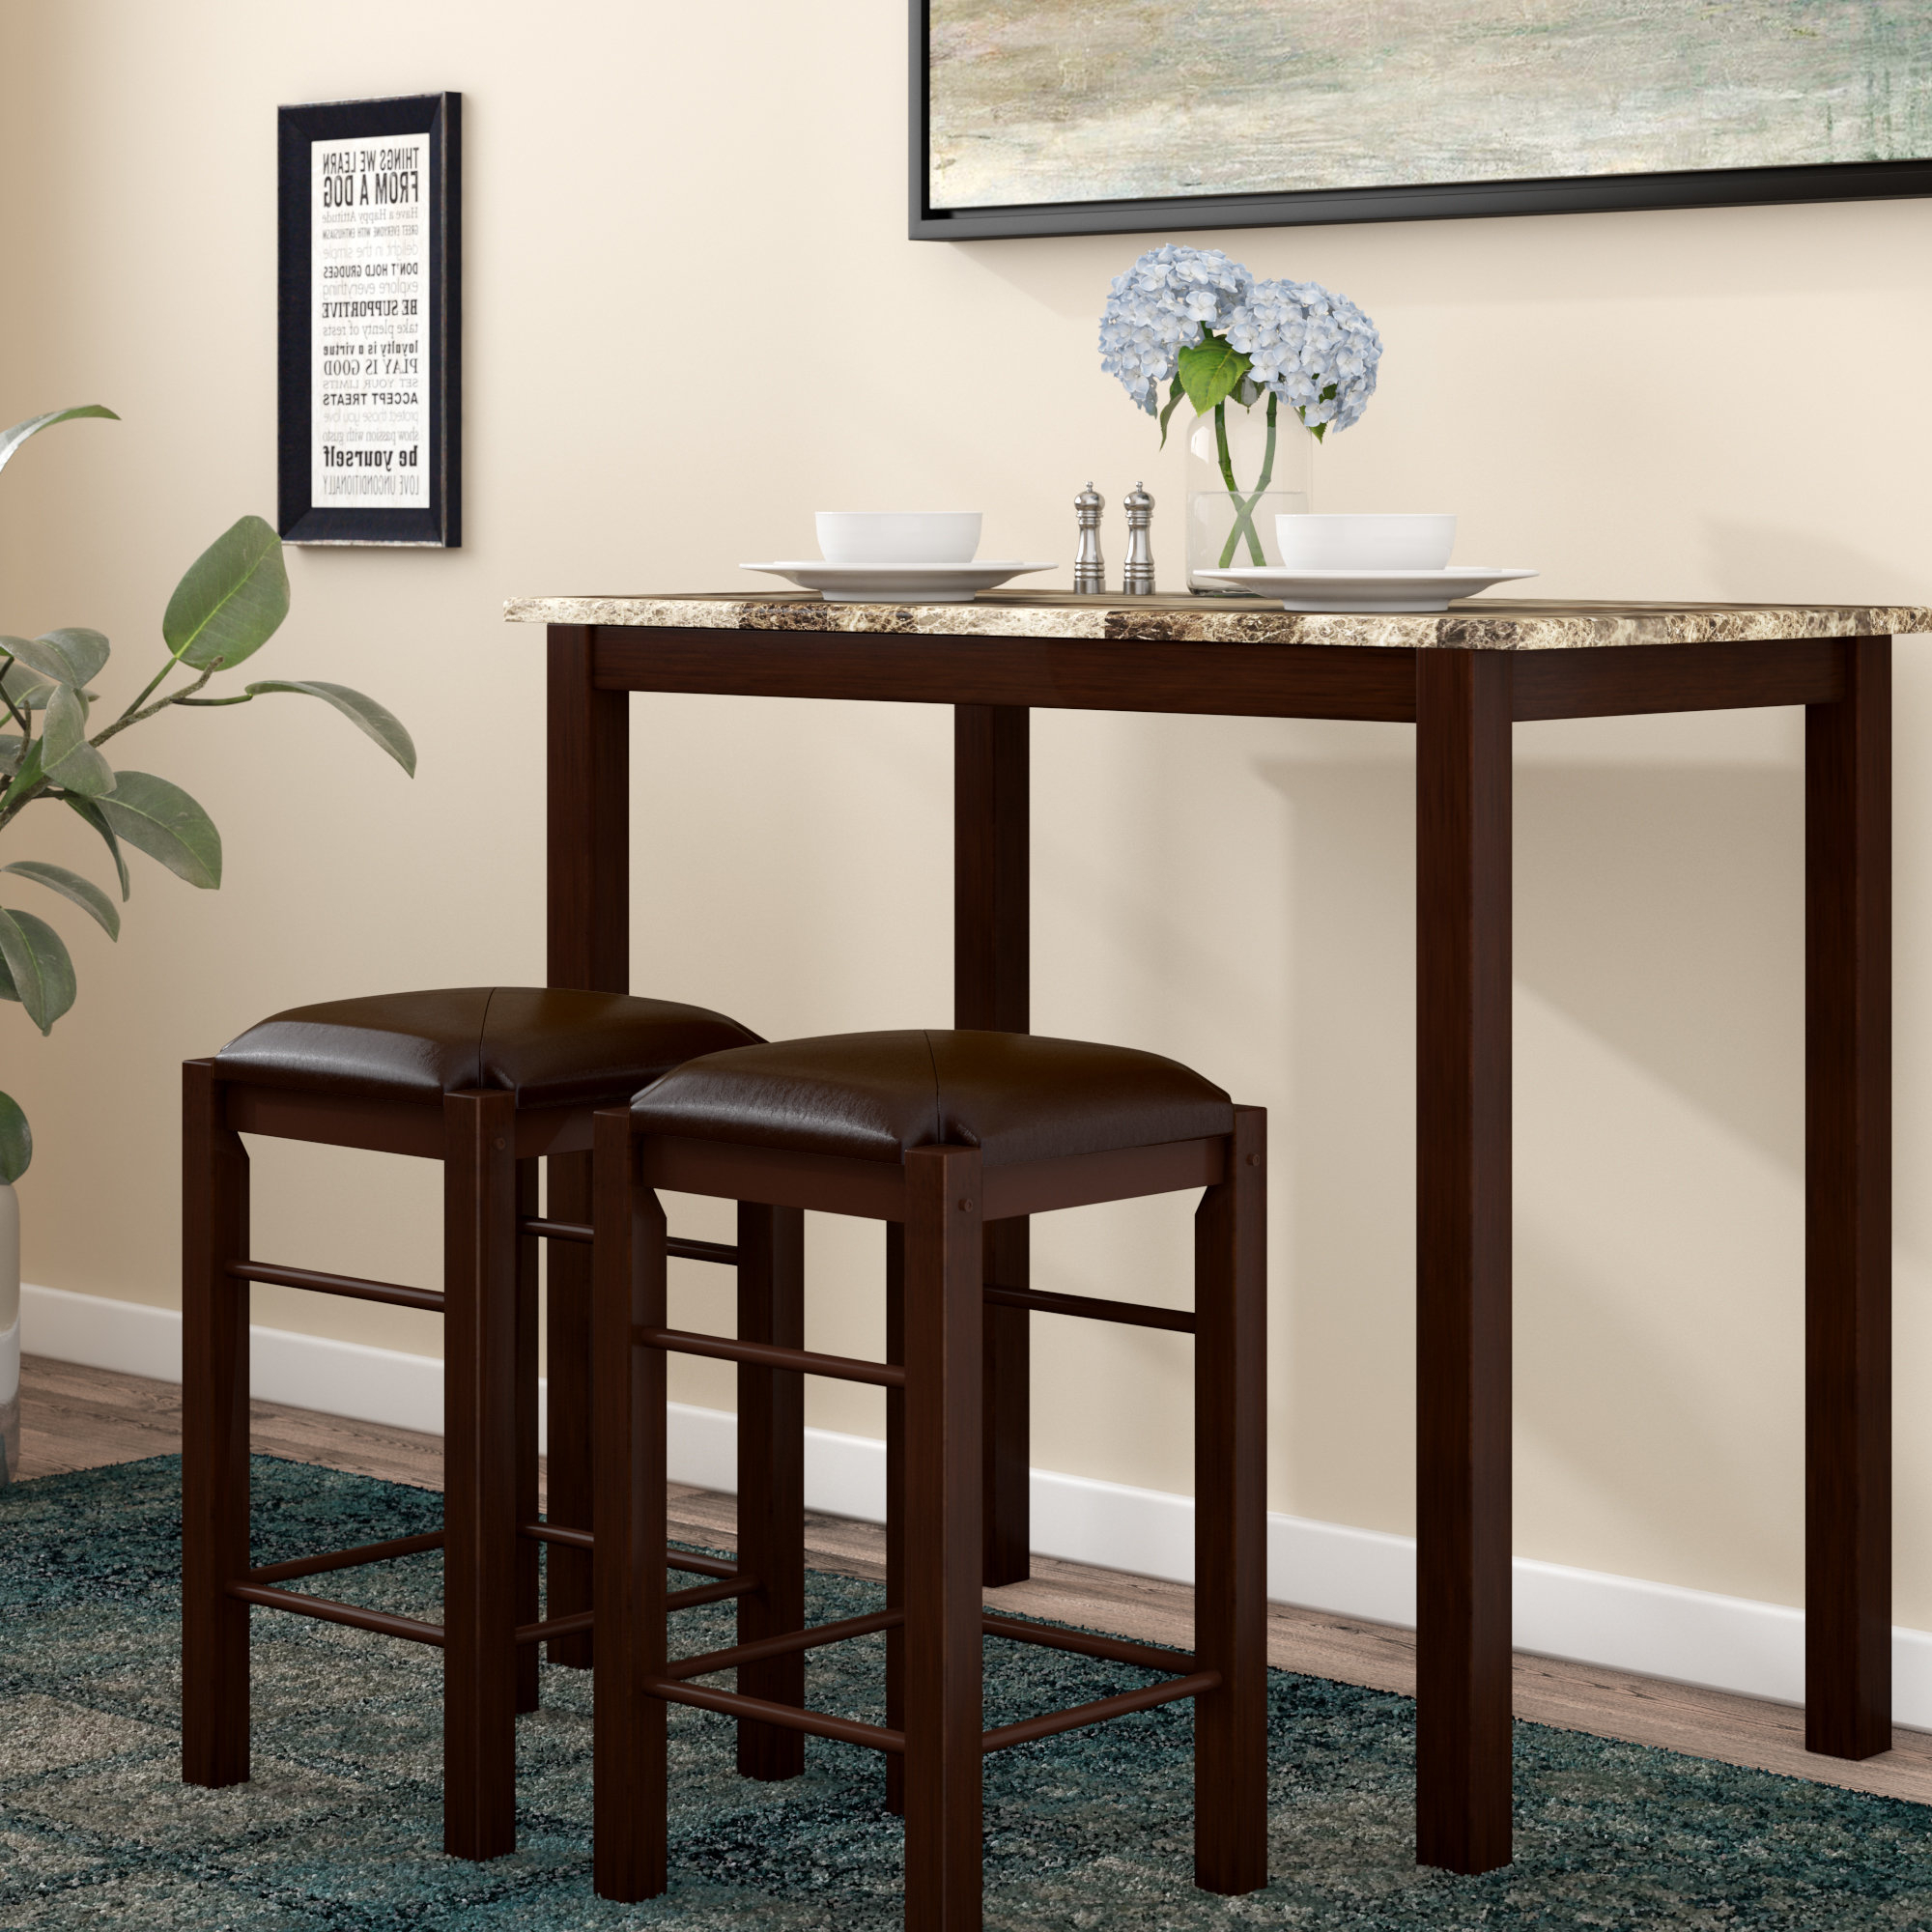 Favorite Penelope 3 Piece Counter Height Wood Dining Set Throughout Lonon 3 Piece Dining Sets (View 6 of 20)